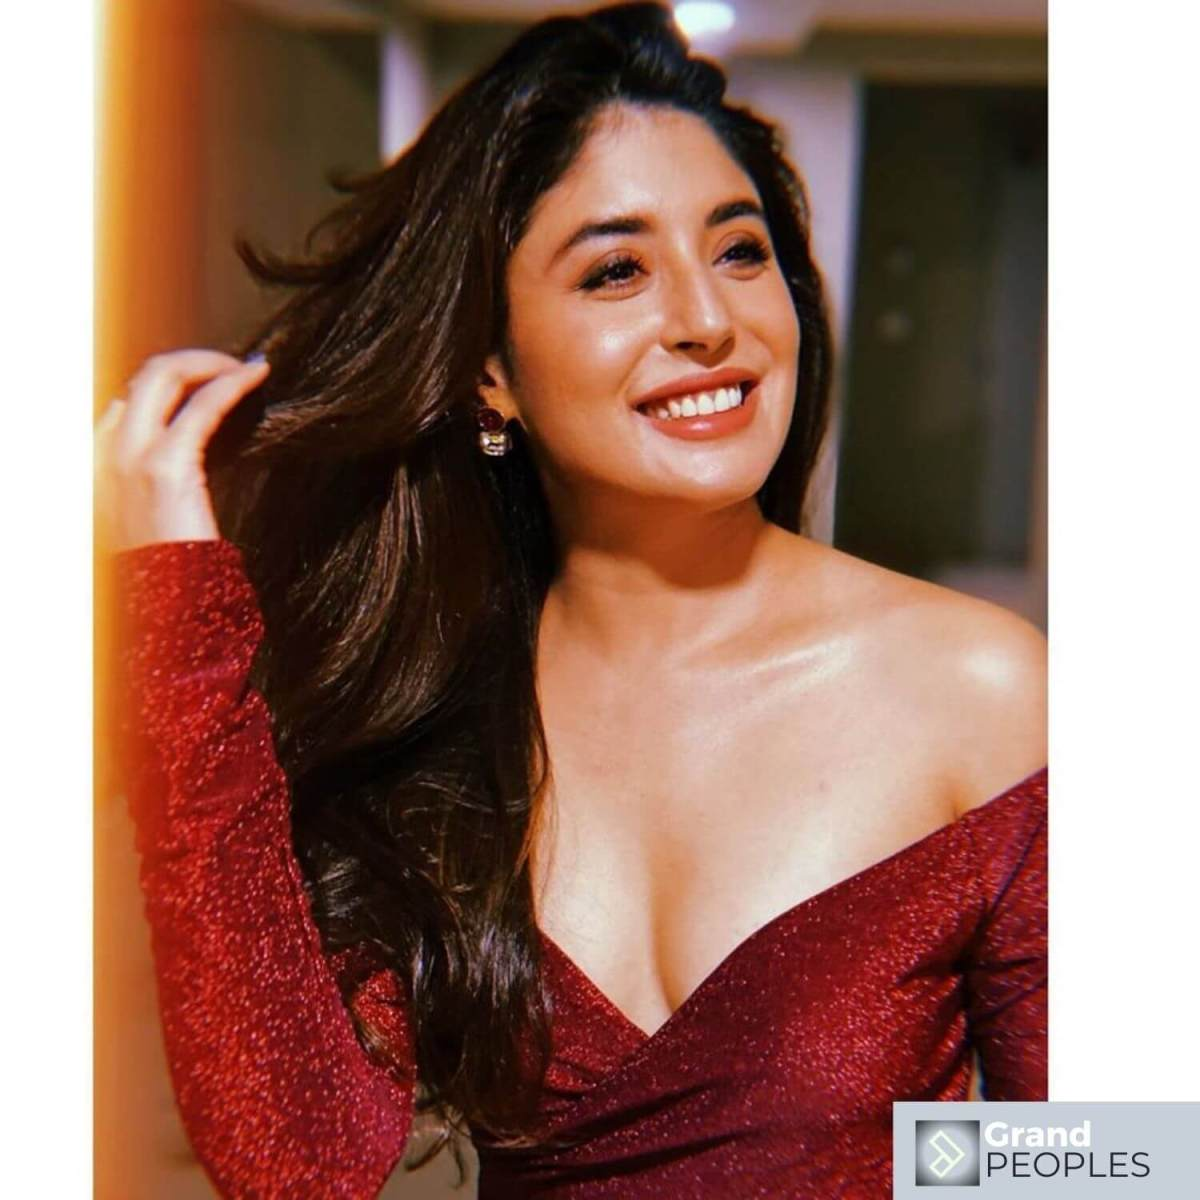 Kritika Kamra biography, husband, biography and more